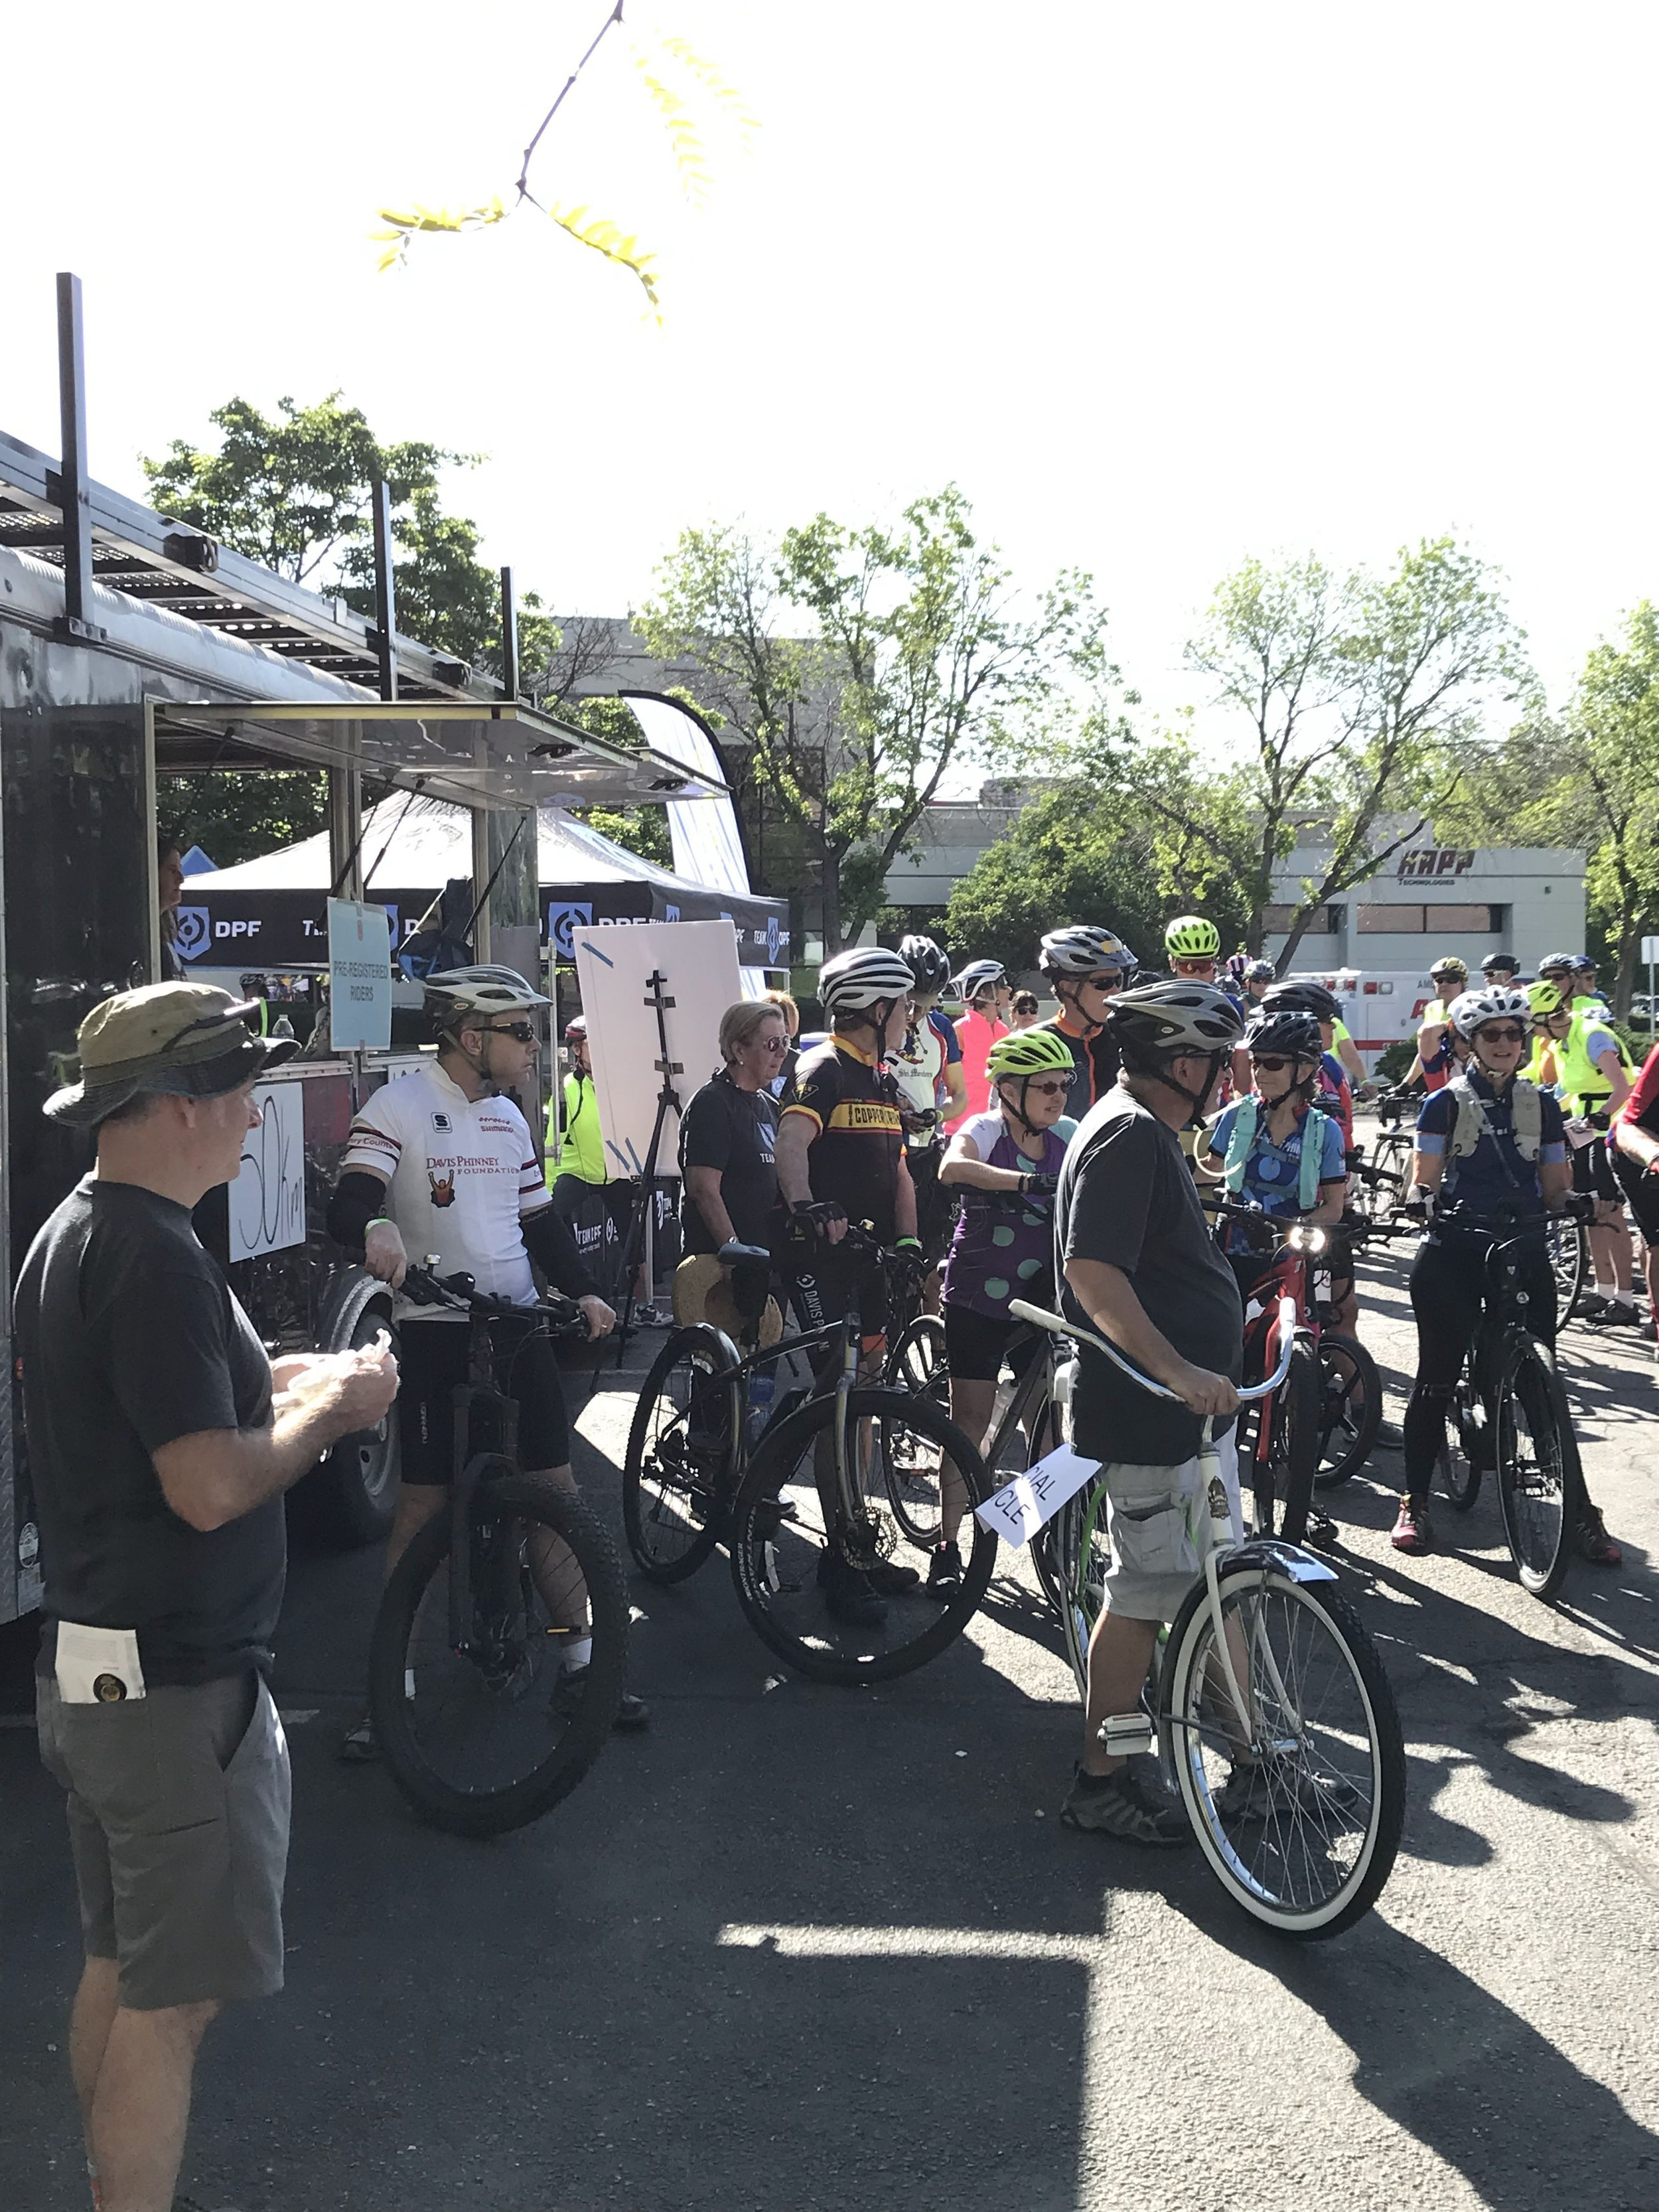 Riders receive instructions at the start